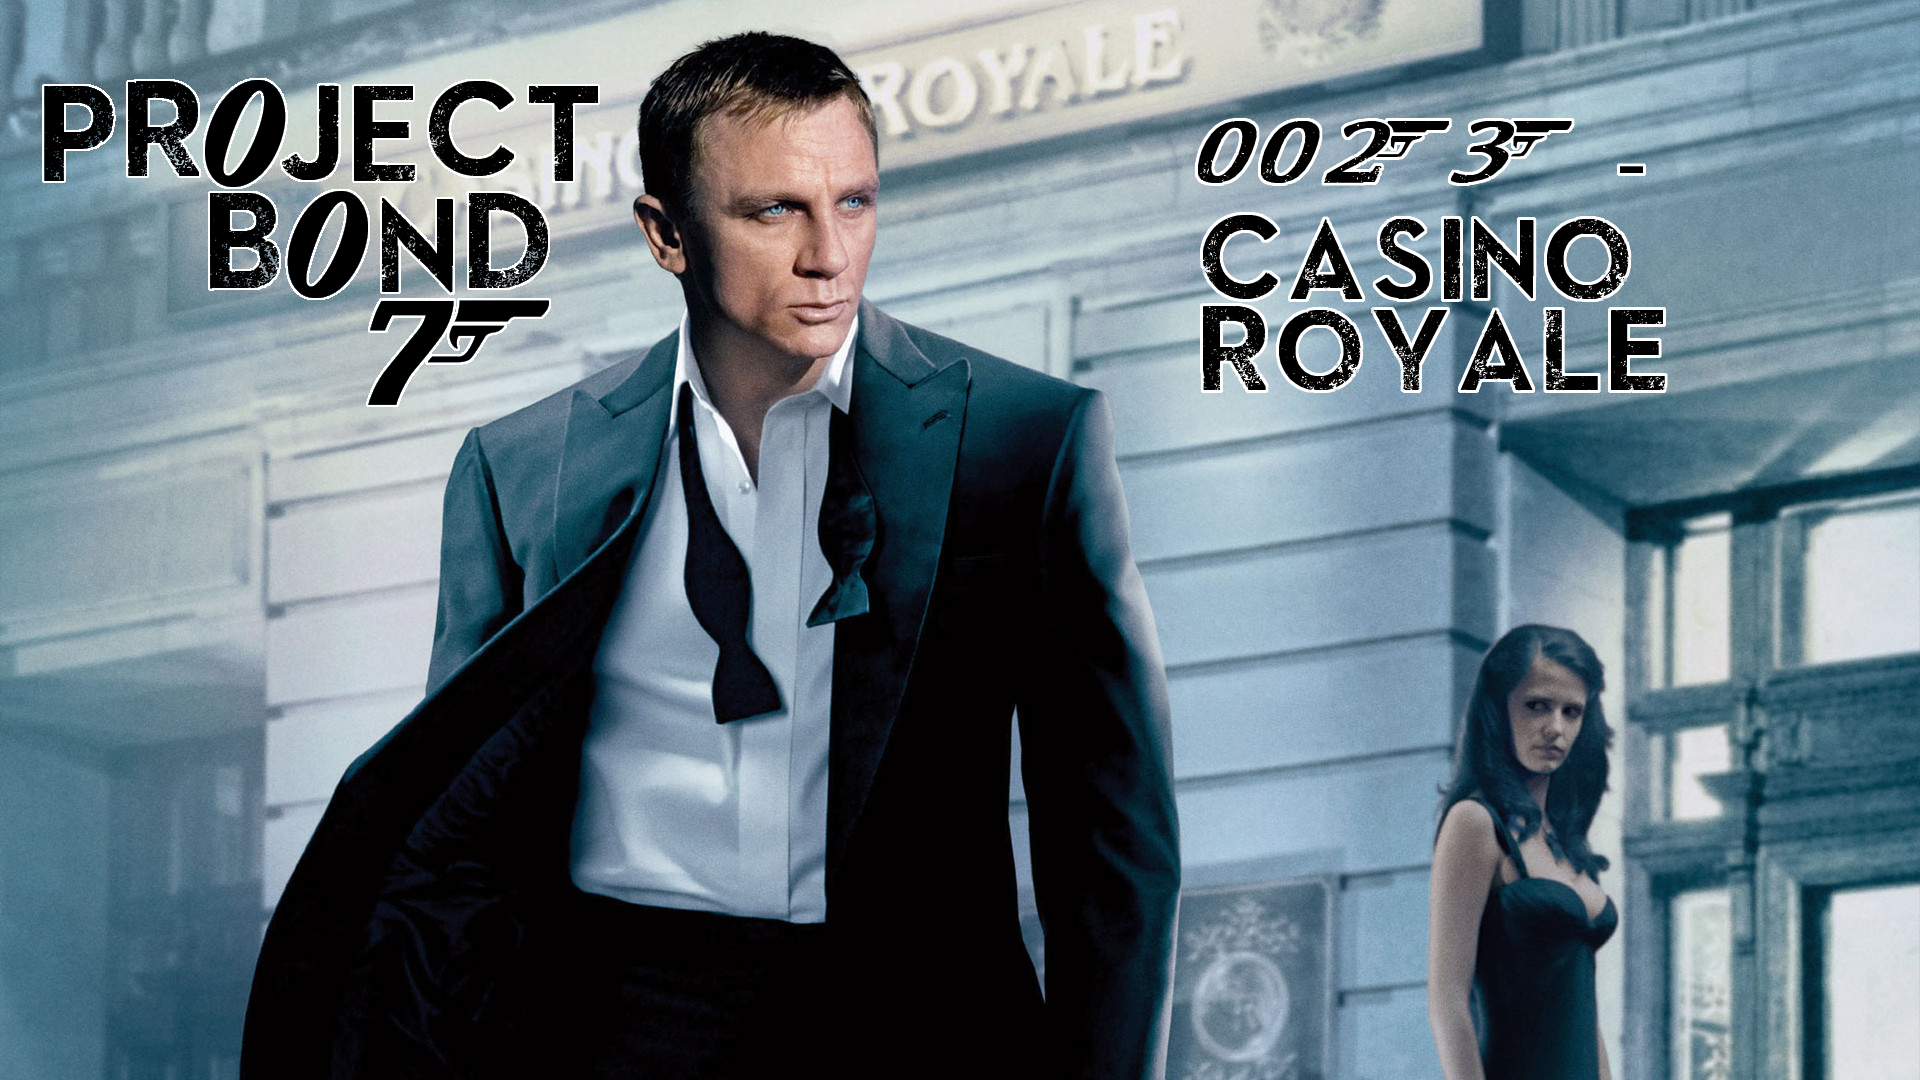 Bond casino copy film royale best online casinos for us players